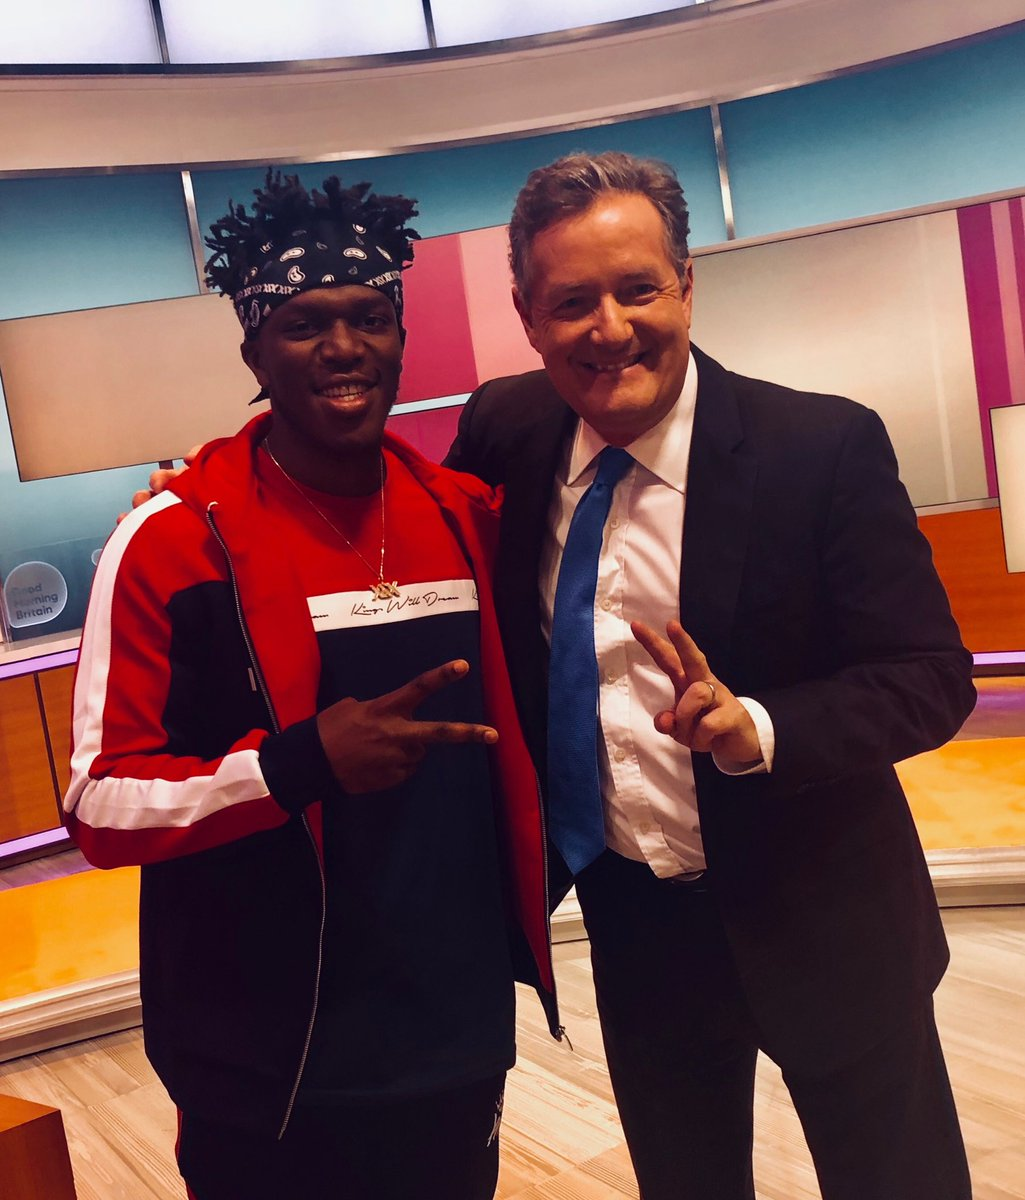 Kings of the Internet. ⁦@KSIOlajidebt⁩ ⁦@GMB⁩